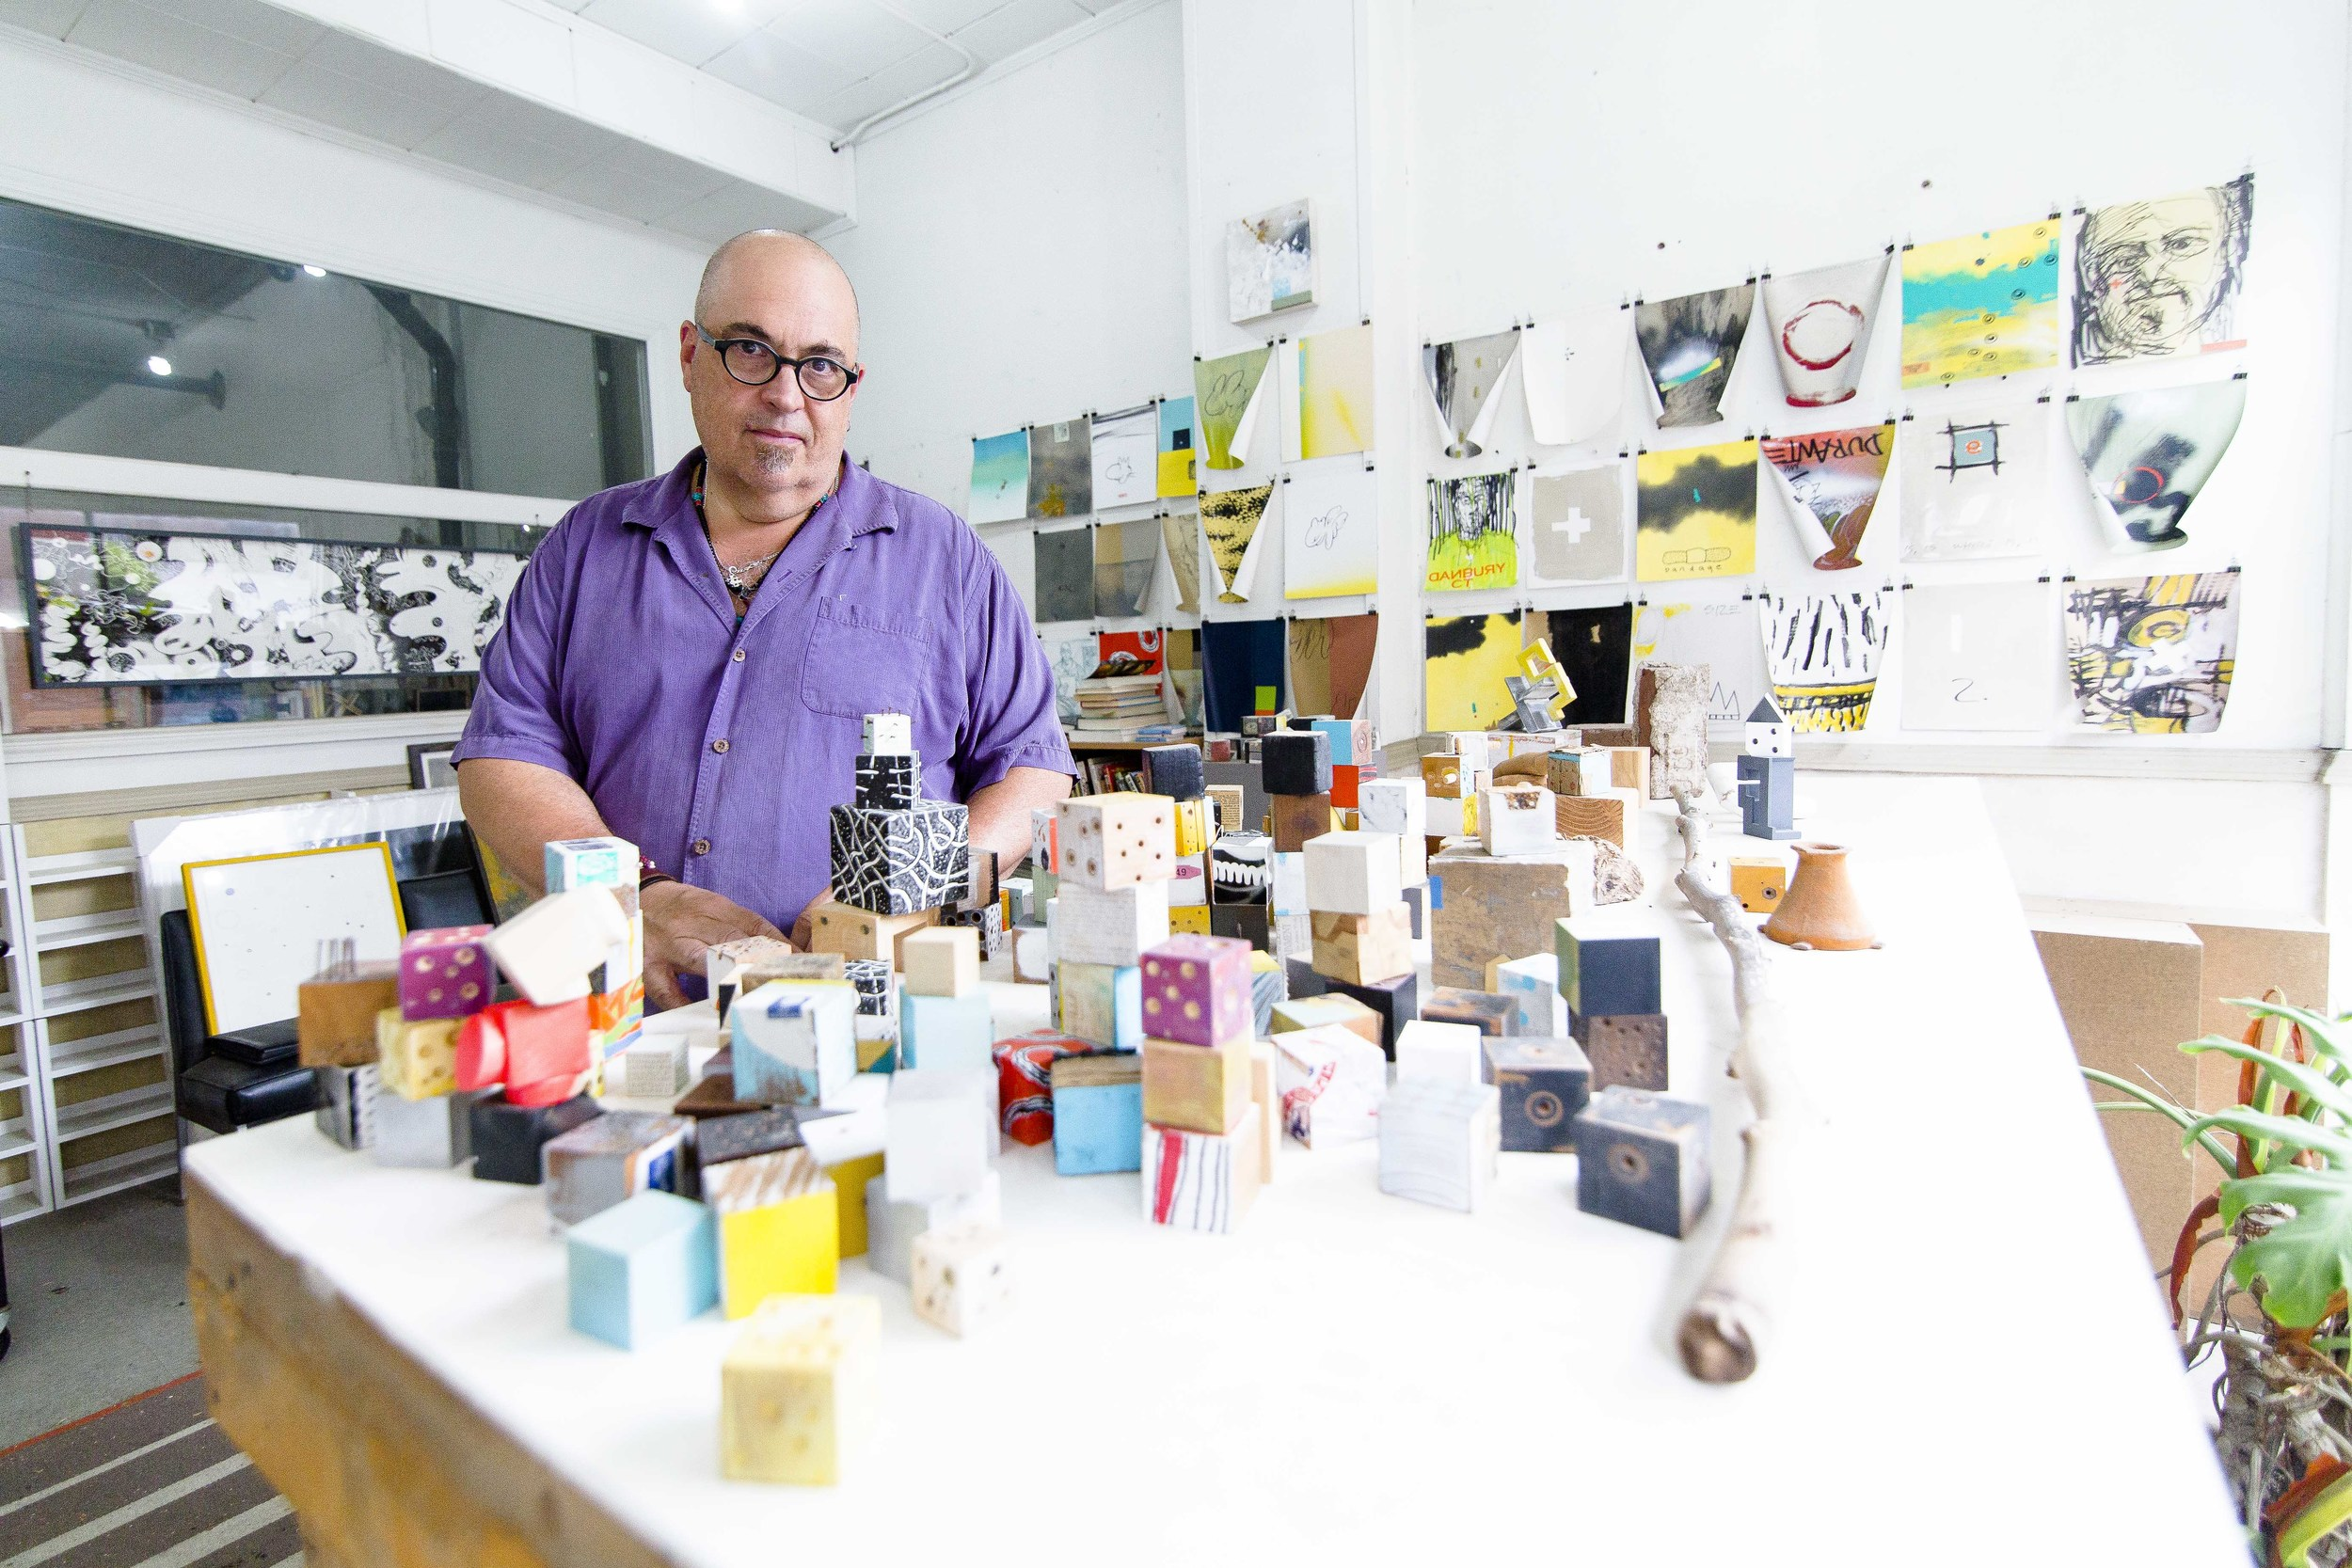 Chris Durante, an artist and NCC adjunct professor, in his Danbury studio.